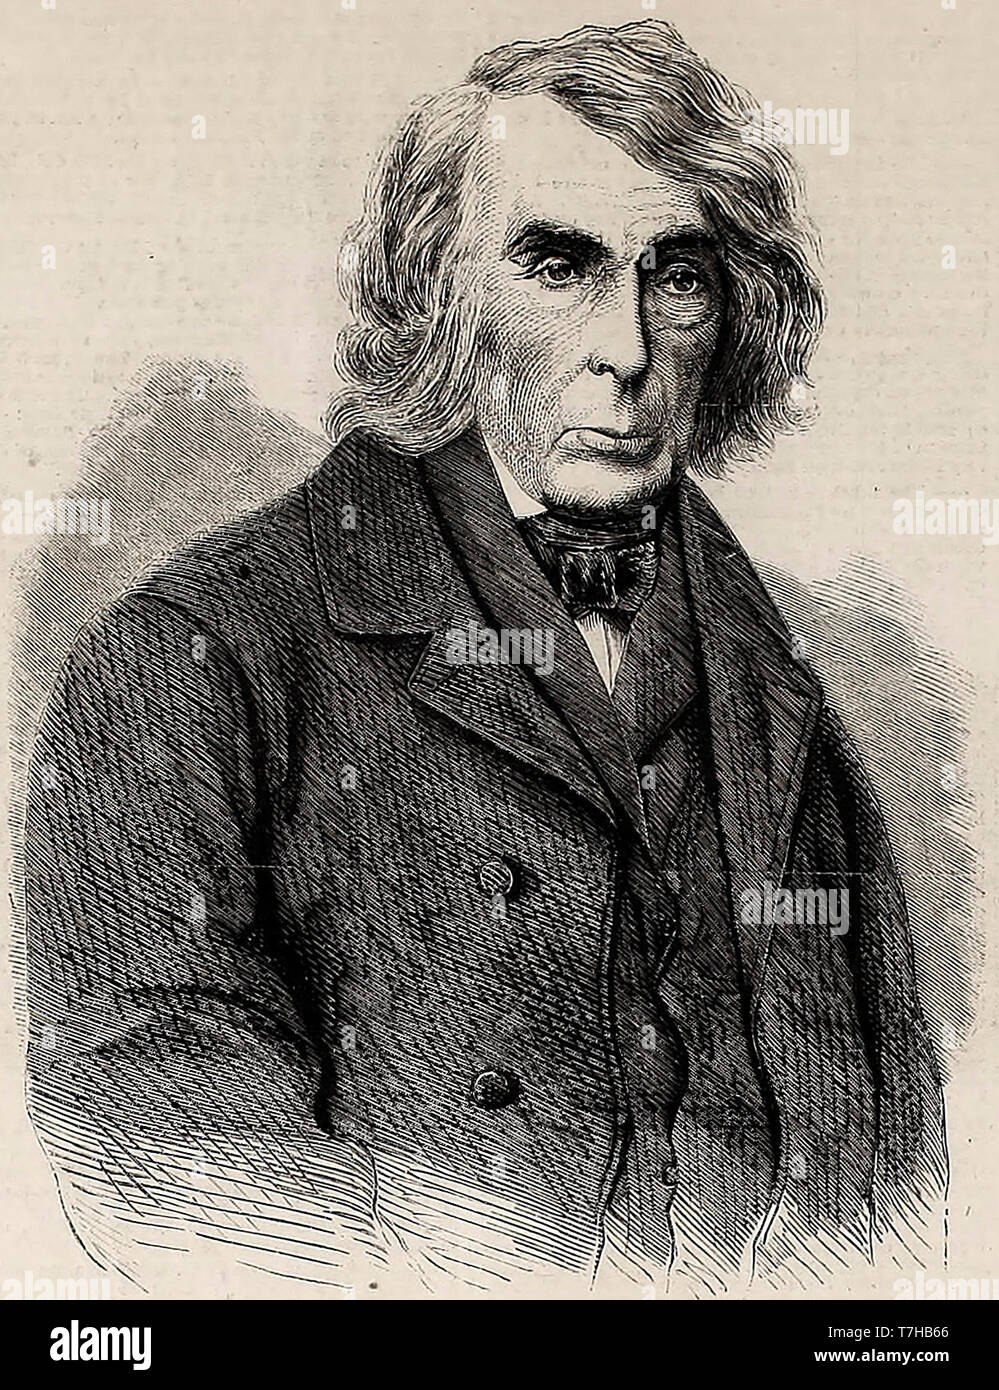 Honorable Roger B Taney, Chief Justice of the American Supreme Court (1836-1864) - Stock Image